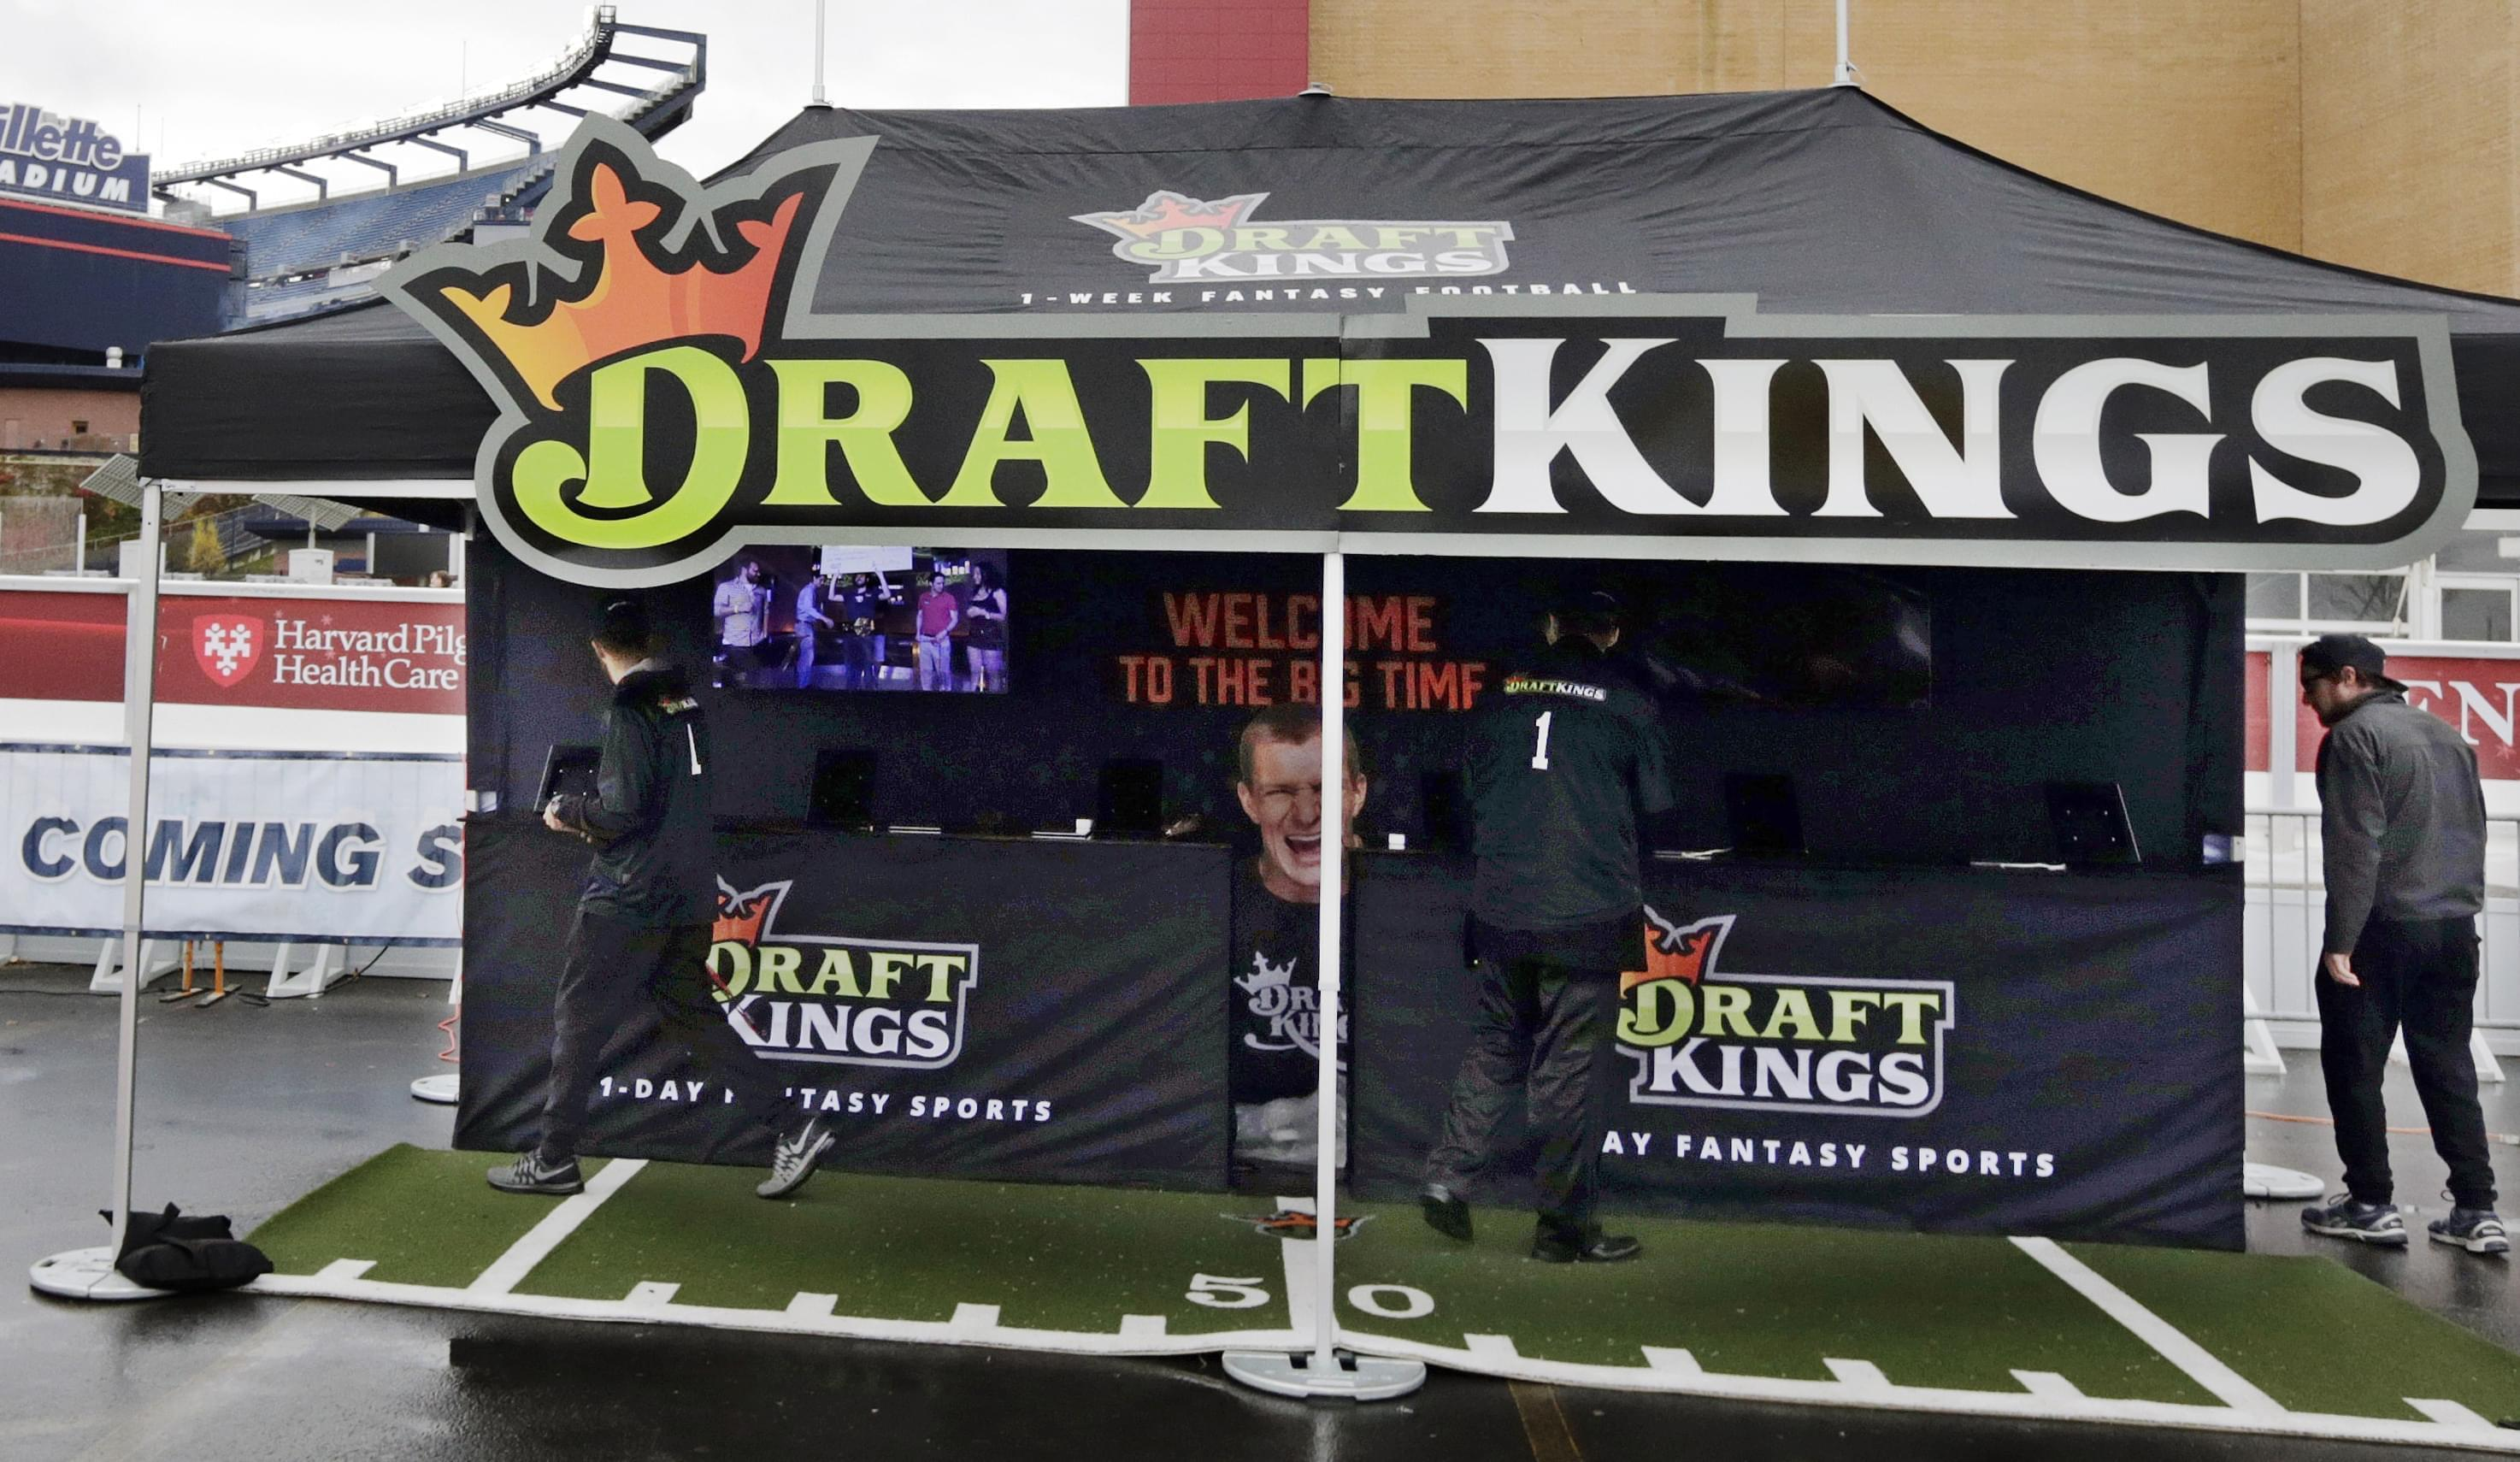 A DraftKings promotions tent in the parking lot of Gillette Stadium, in Foxborough, Mass.